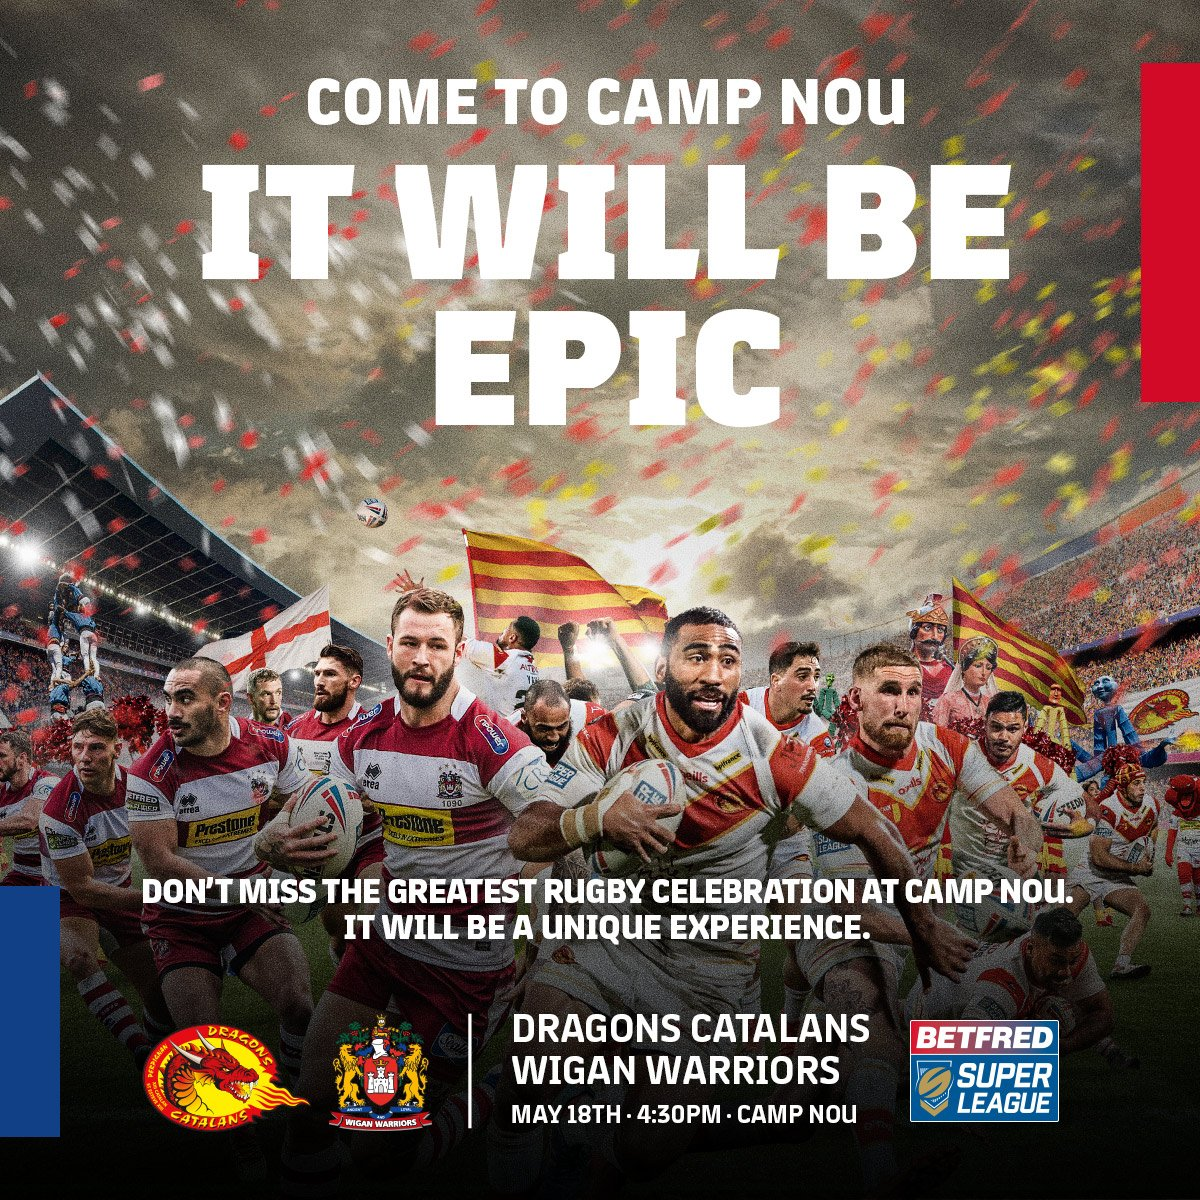 🙌 This May, experience something unique in the Camp Nou! We're waiting for you! 📍 Camp Nou  📅 18/05 4.30pm 🏉 @DragonsOfficiel v @WiganWarriorsRL 🎟 http://ow.ly/ozuO50tjoPN